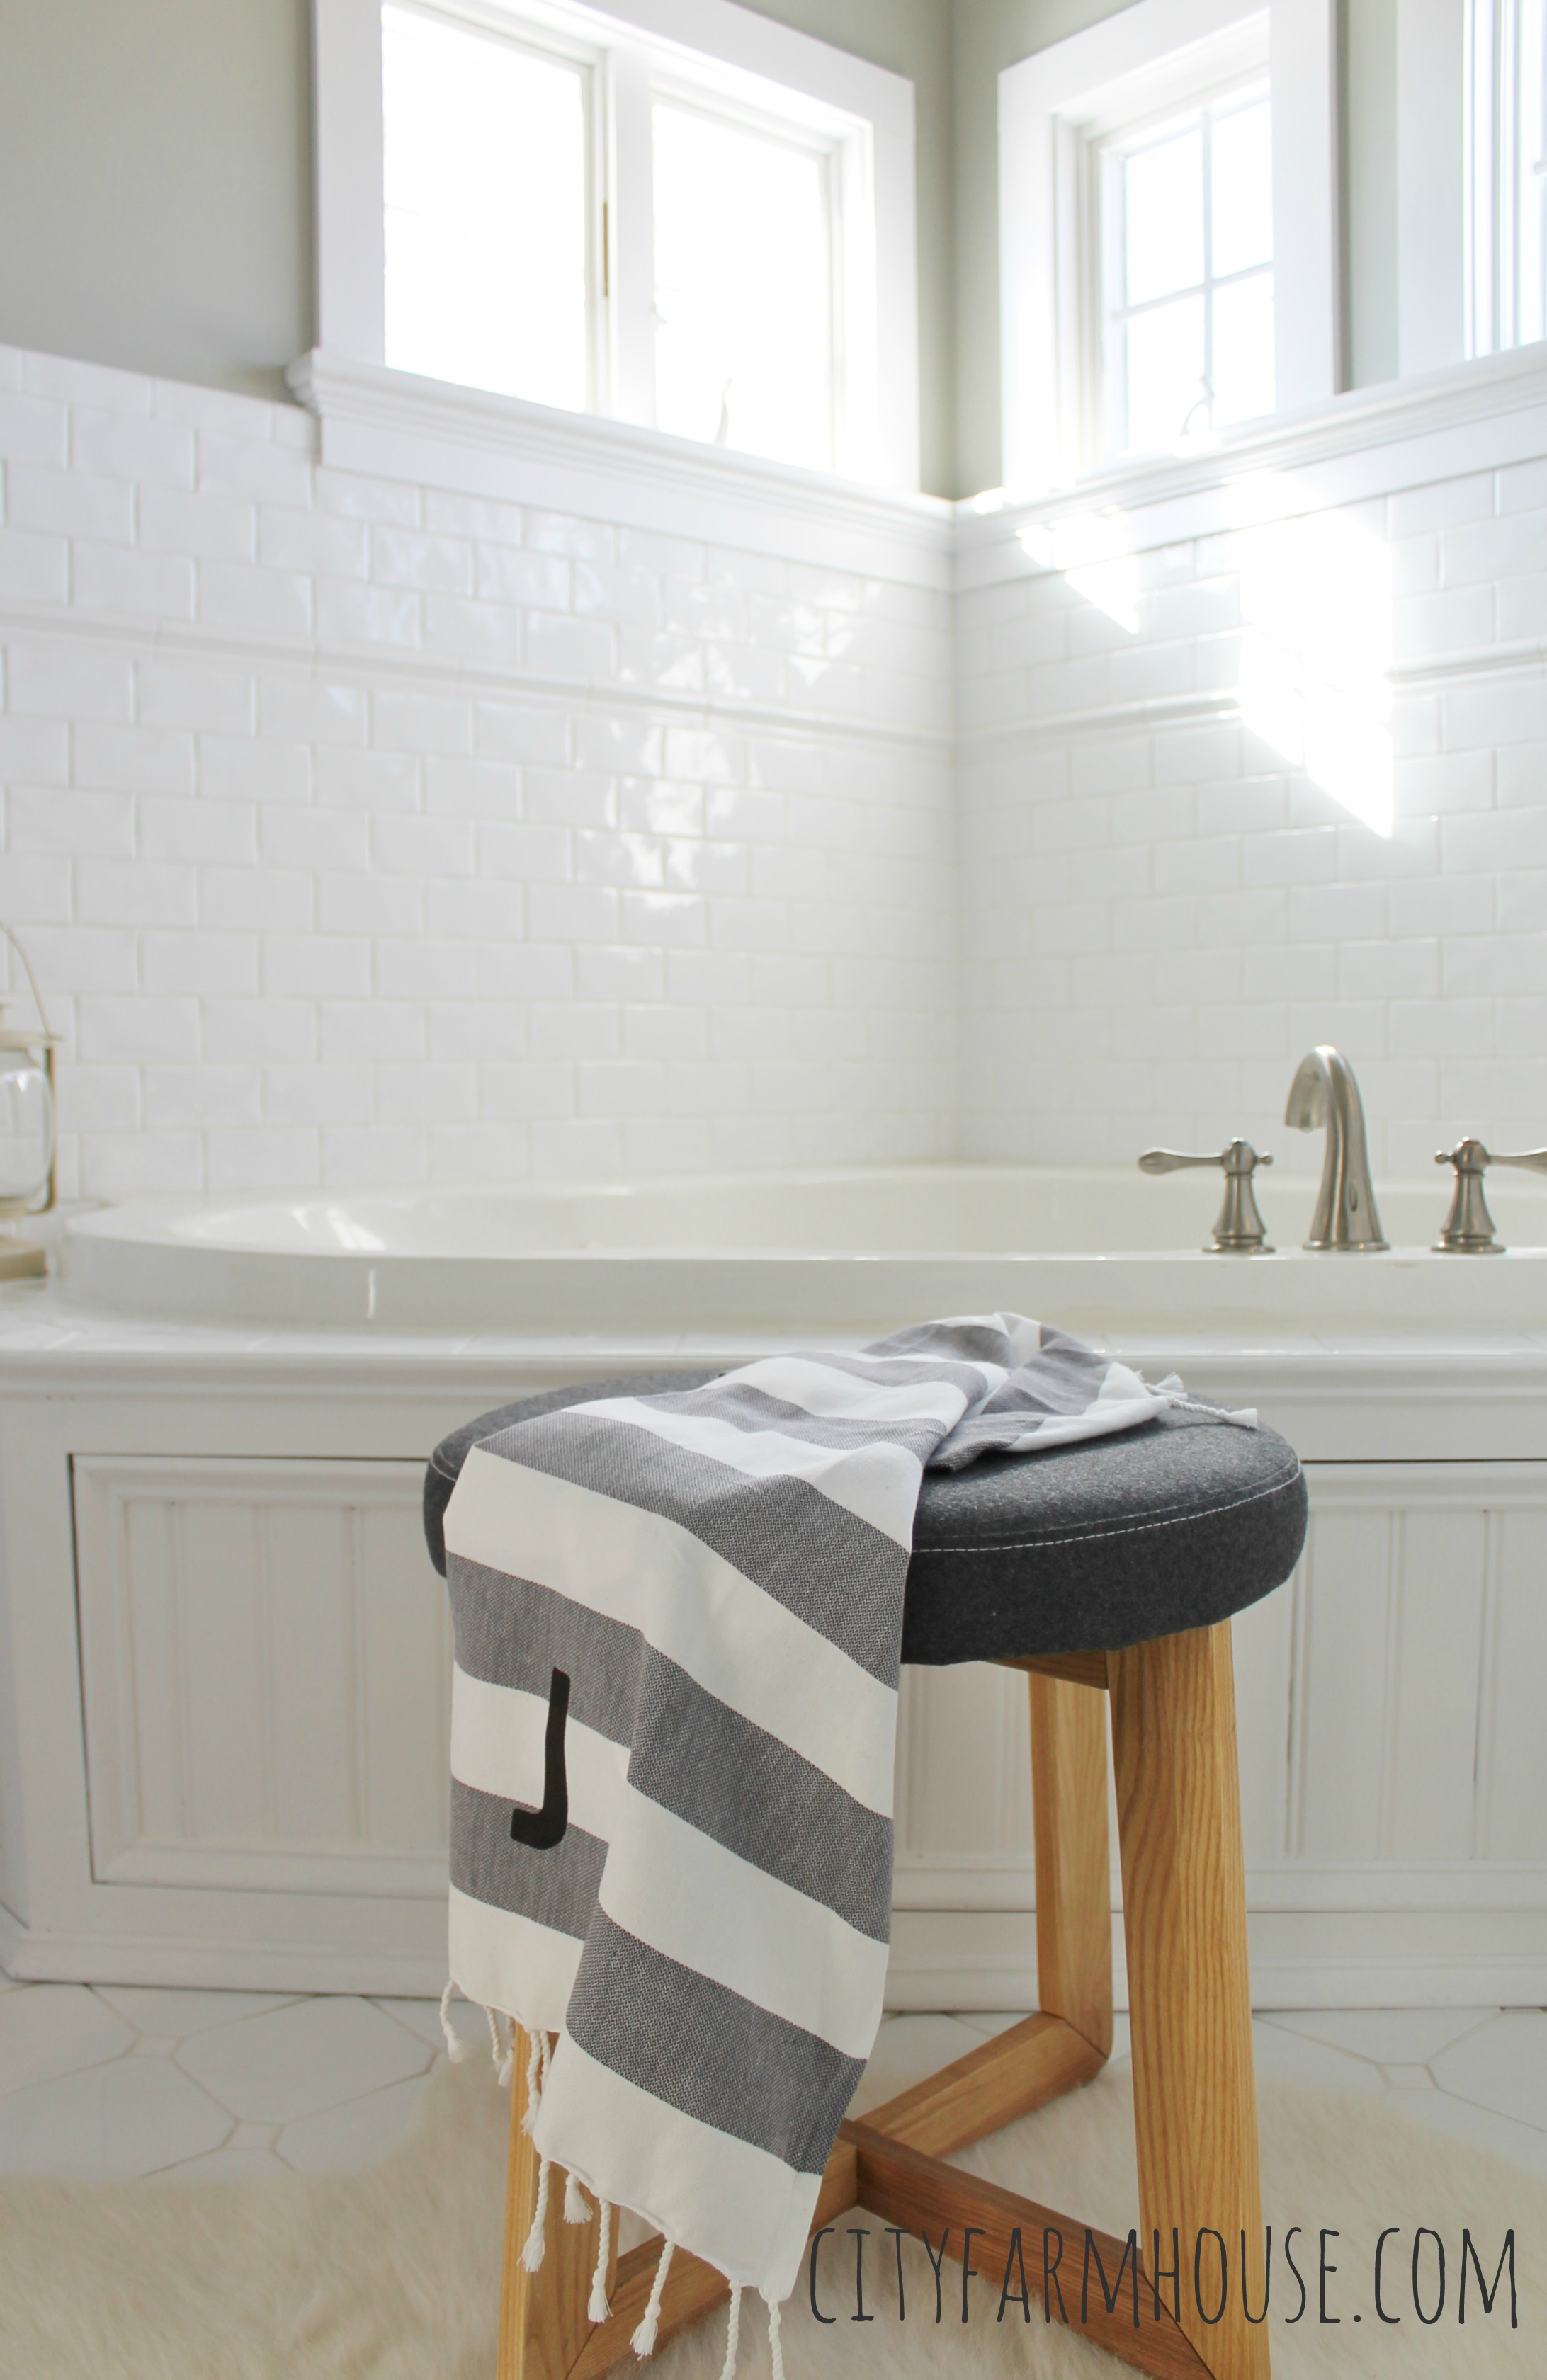 White-Subway-Tile-Classic-Small-Windows-Wall-Color-Olympic-Sprig-of-Ivy-City-Farmhouse